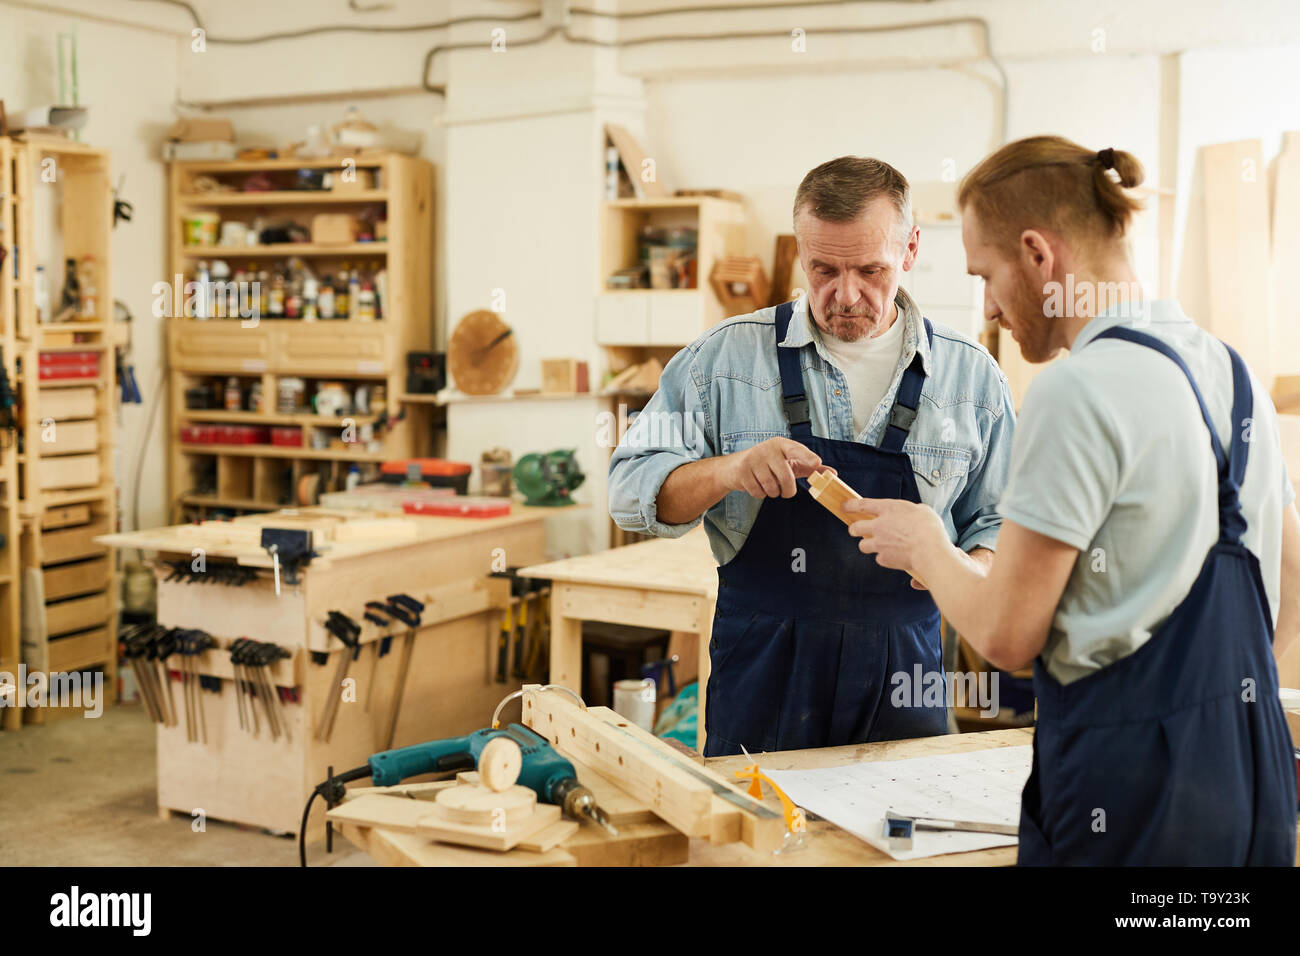 Portrait of senior carpenter helping young trainee while working in joinery workshop, copy space - Stock Image